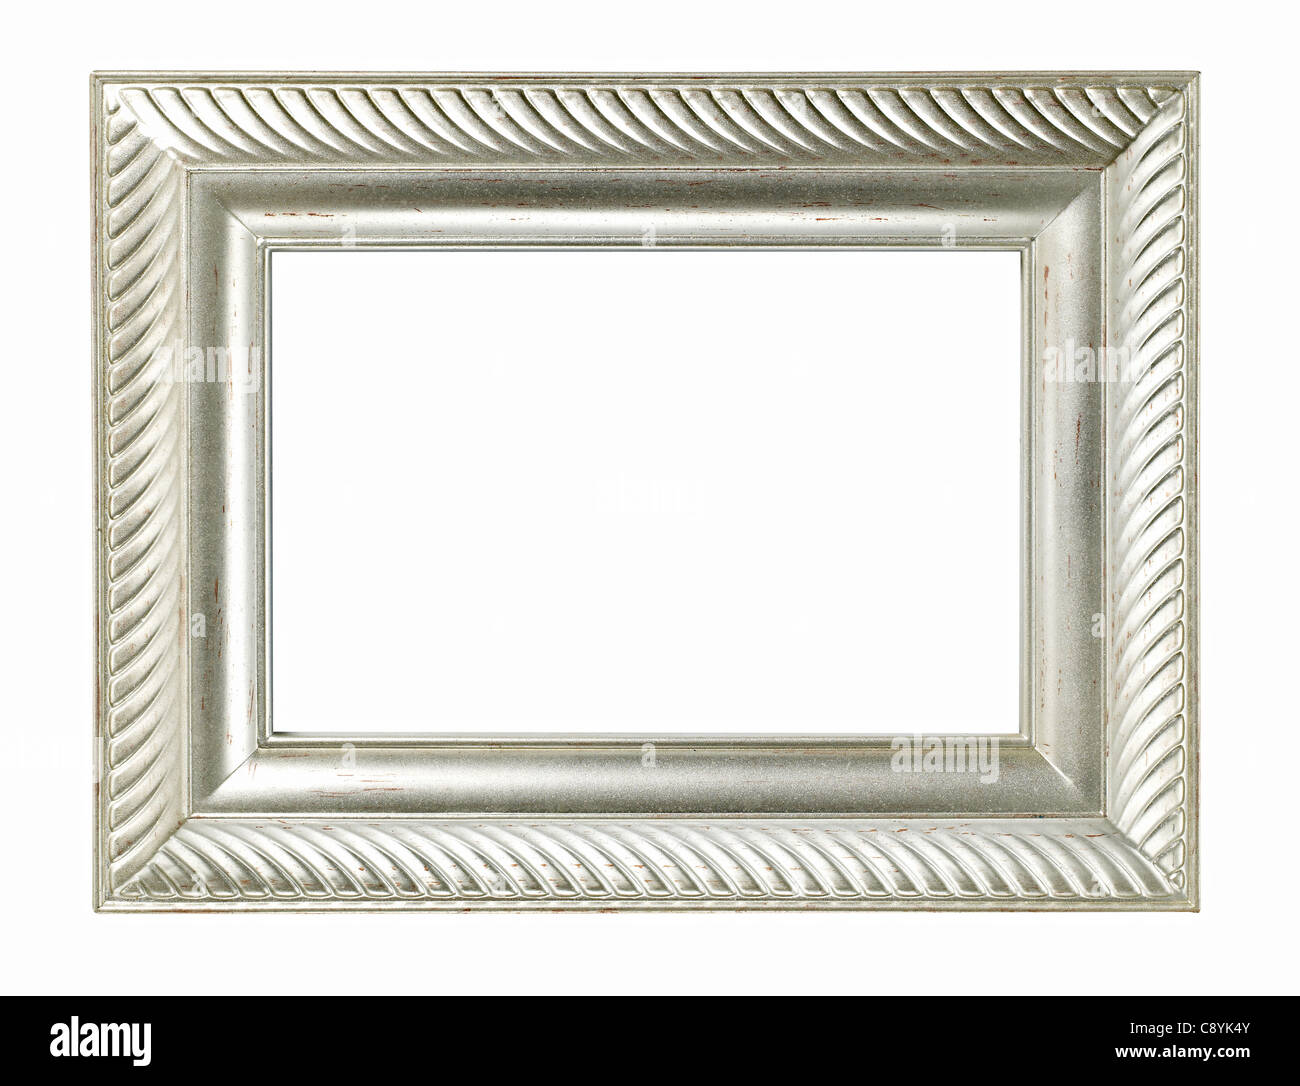 Silver metal finish Picture frame - Stock Image